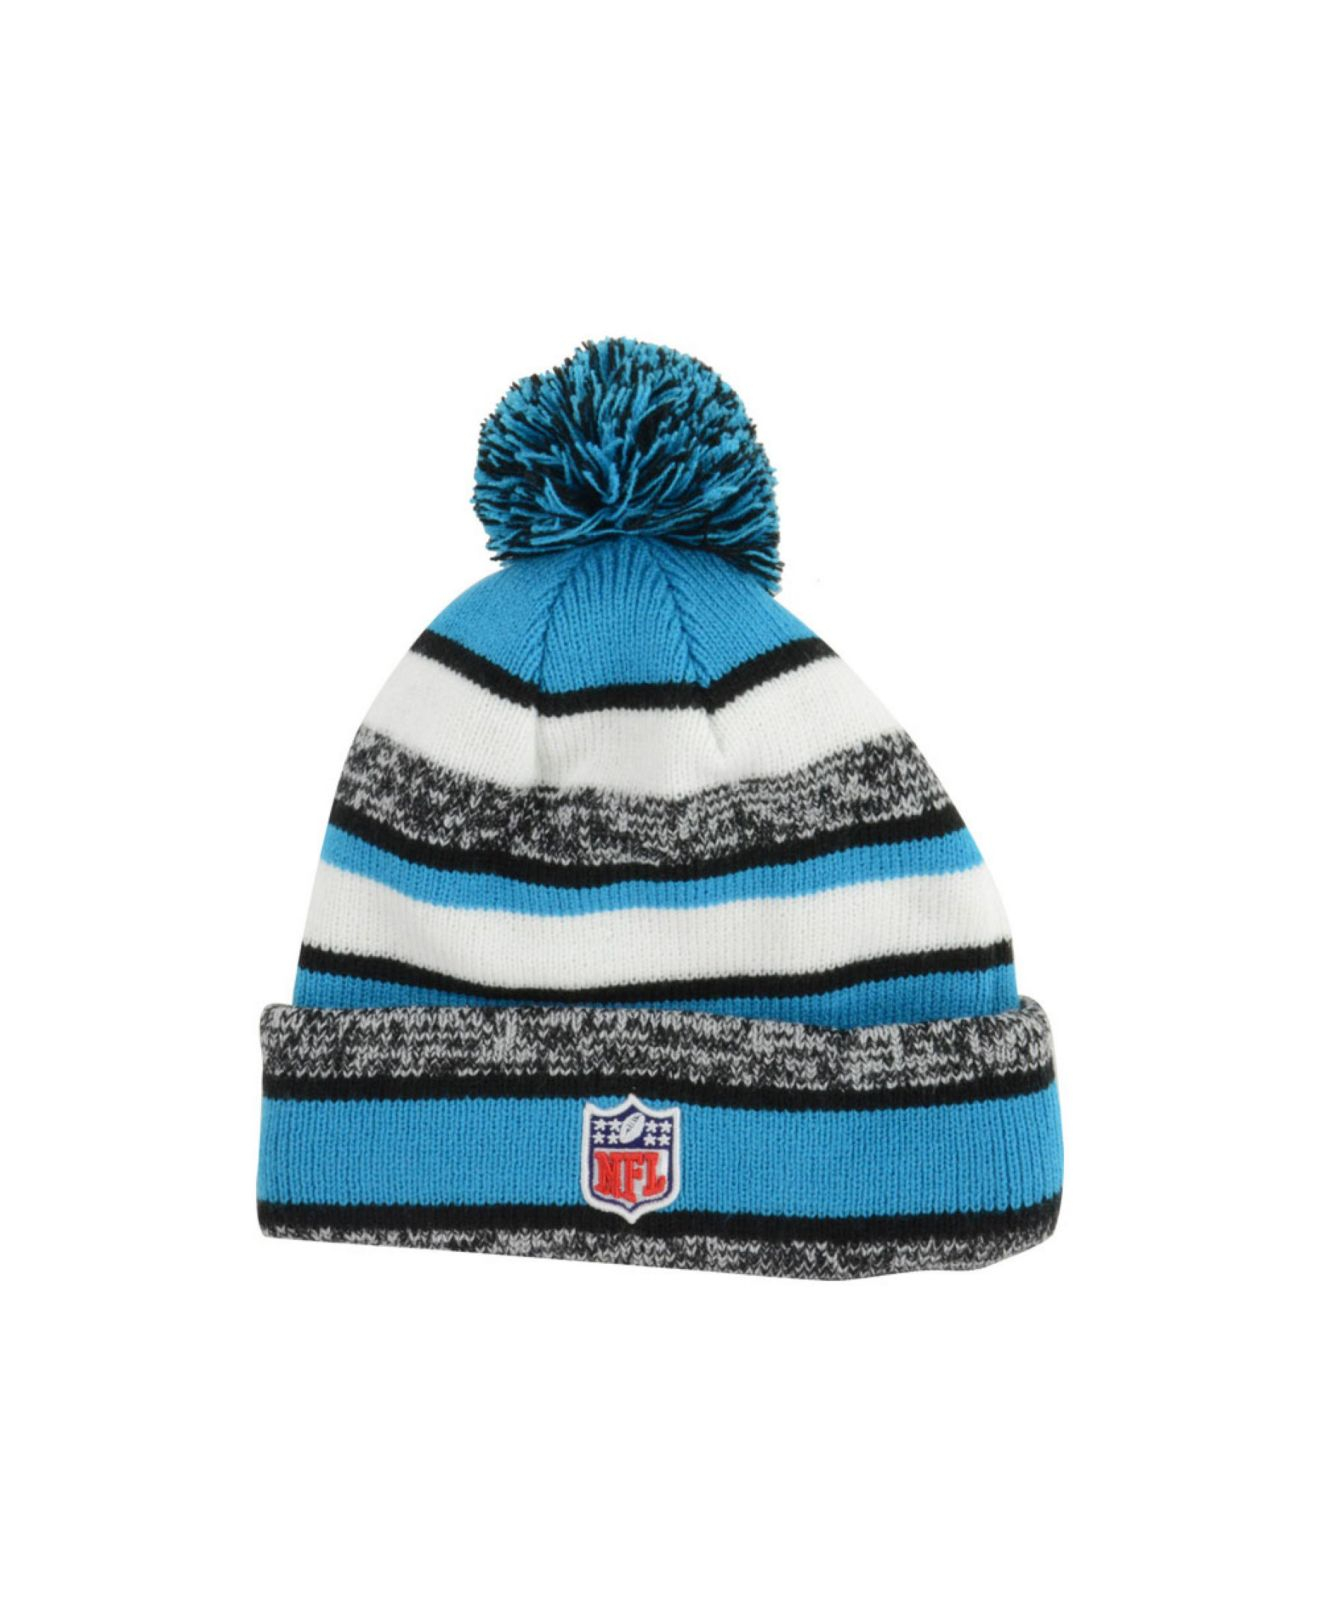 Lyst - KTZ Carolina Panthers Sport Knit Hat in Blue for Men 775c928c40b